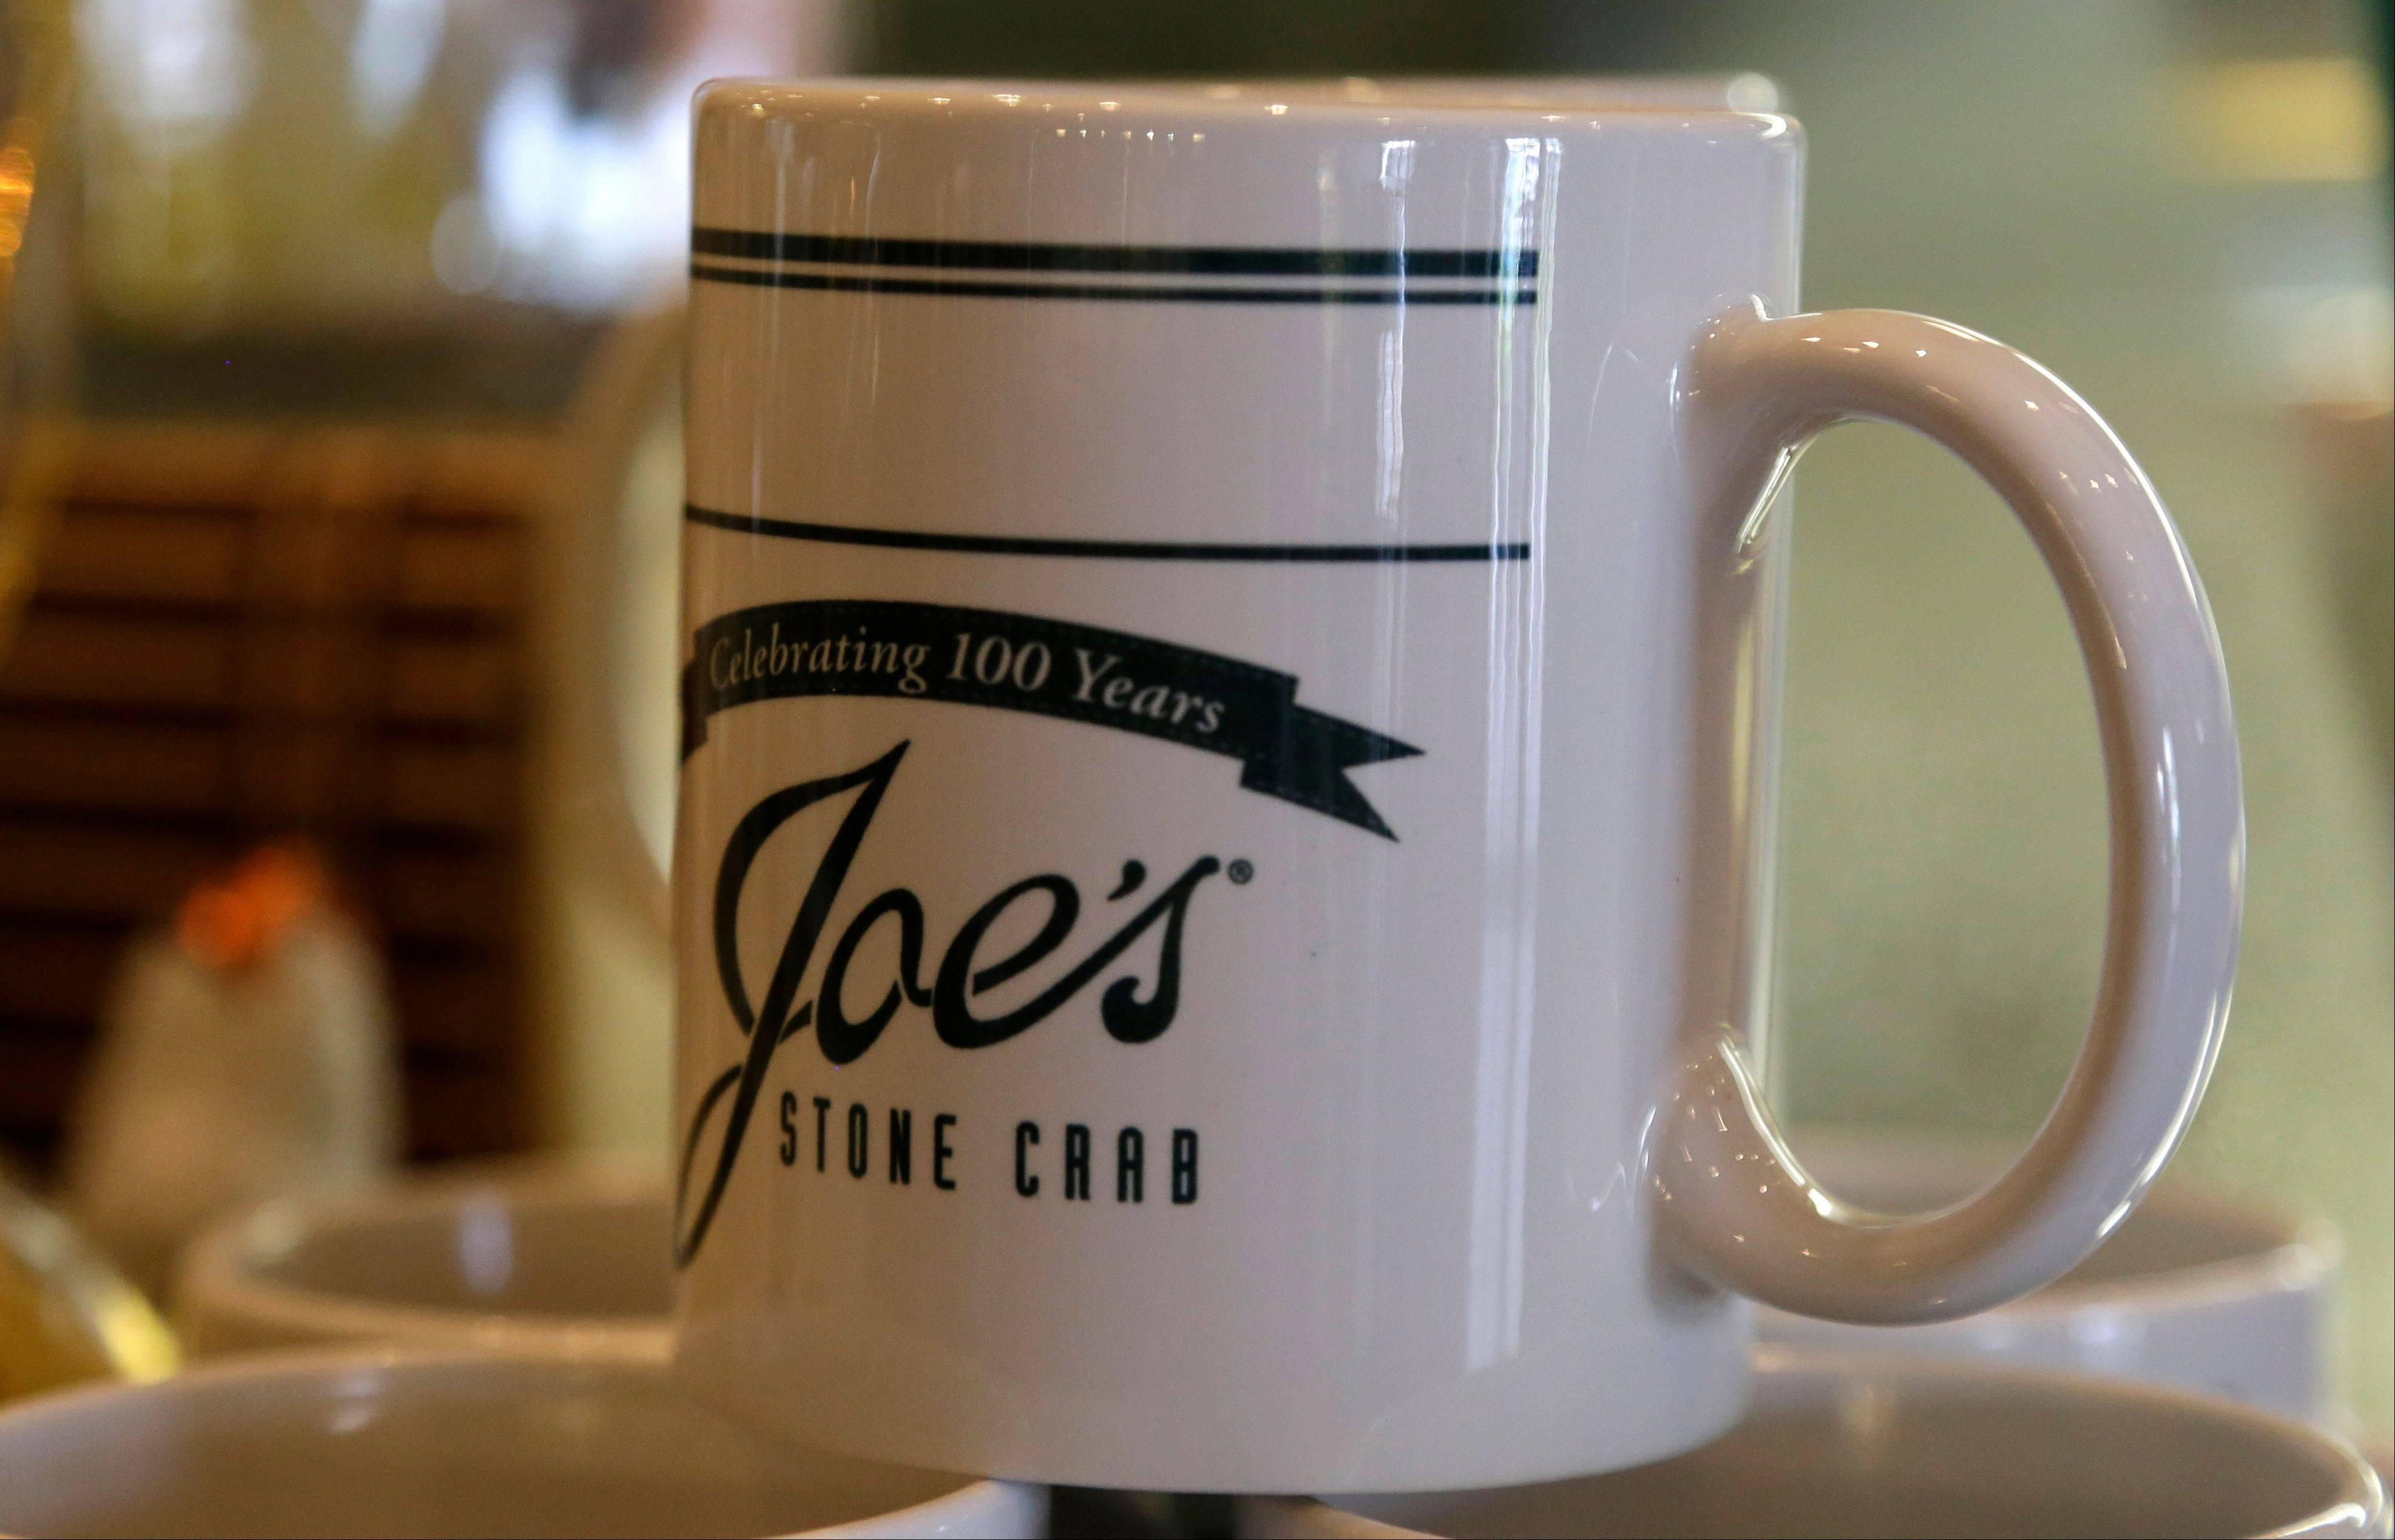 A coffee mug is among the mementos guests can pick up in the gift shop at Joe's Stone Crab restaurant in Miami Beach, Fla. Joe's Stone Crab has been family-owned from the start when it opened in 1913 as a mom-and-pop fish house.